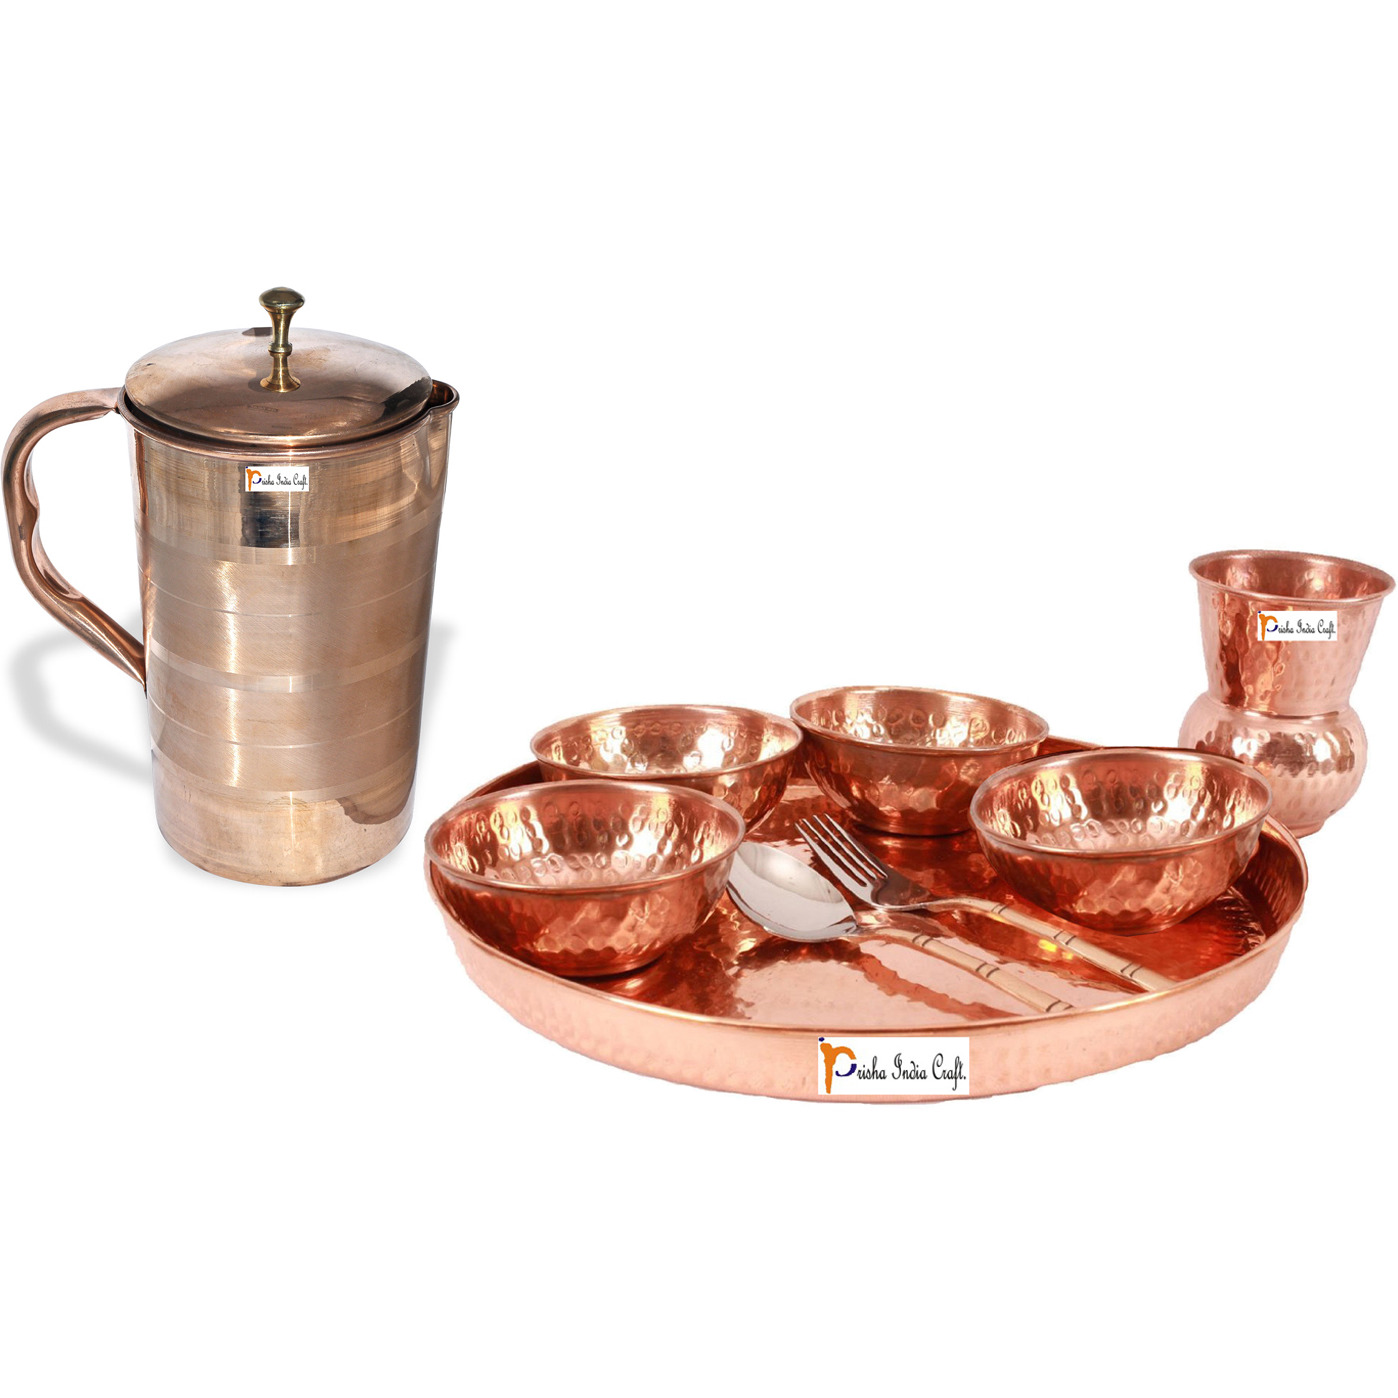 Prisha India Craft B. Dinnerware Traditional 100% Pure Copper Dinner Set of Thali Plate, Bowls, Glass and Spoon, Dia 12  With 1 Luxury Style Pure Copper Pitcher Jug - Christmas Gift